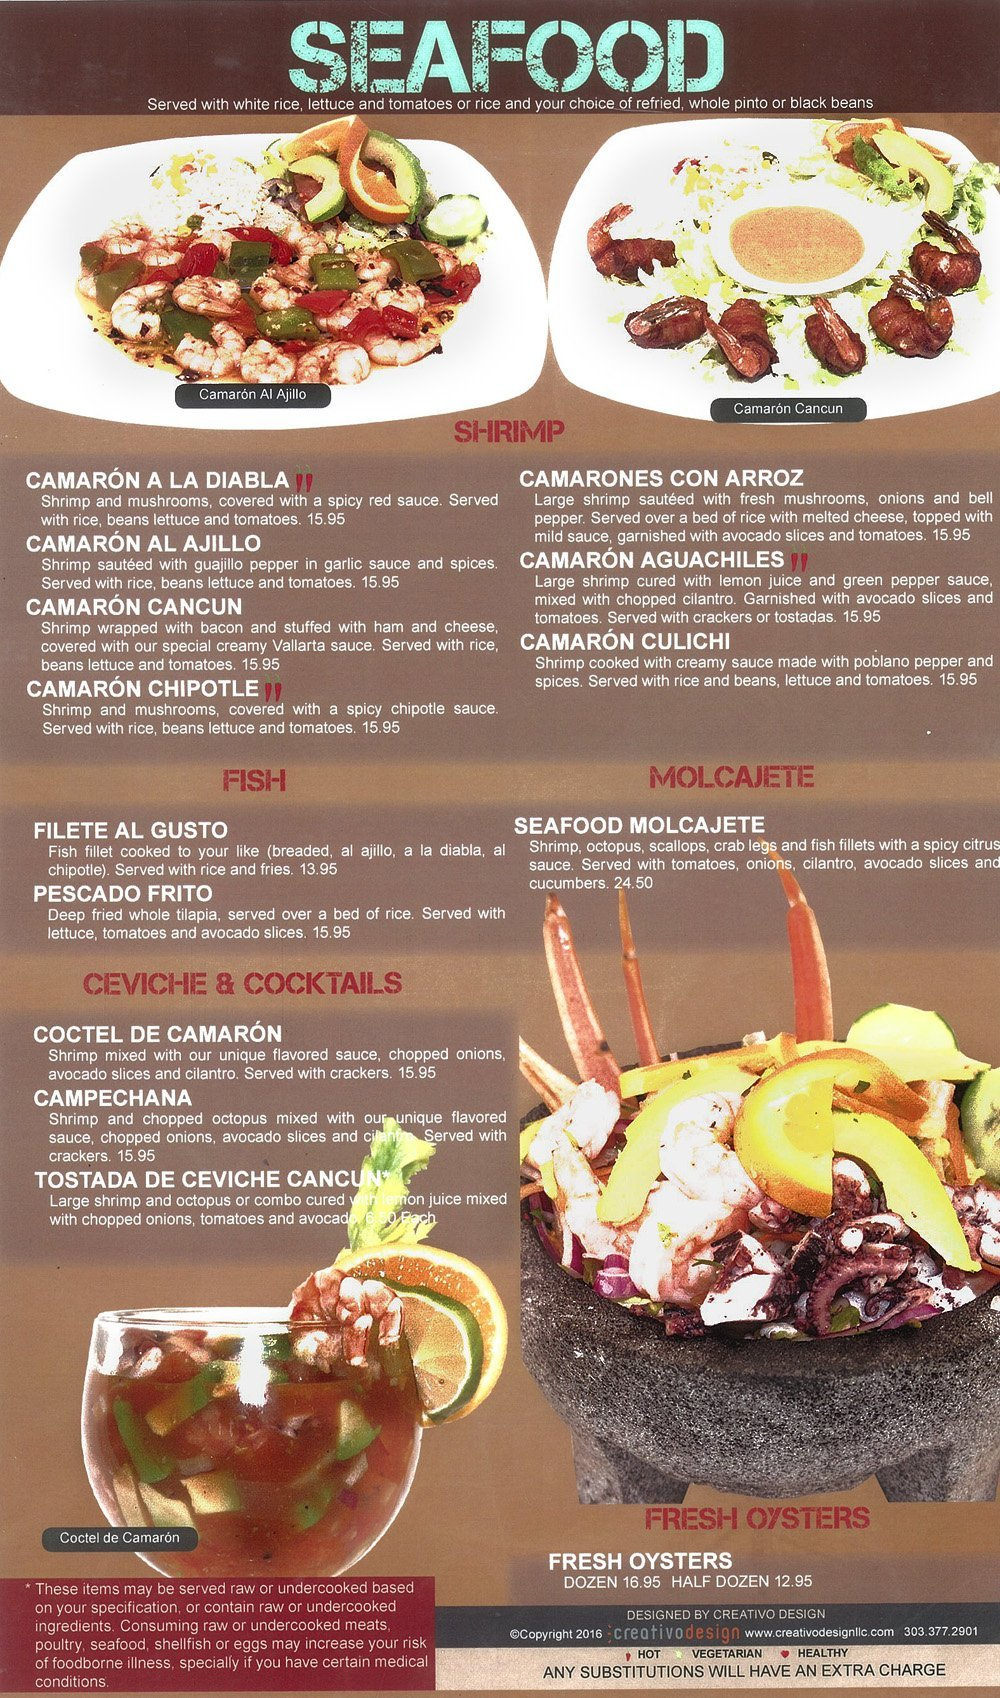 Seafood cancun mexican grill and cantina view menu pdf forumfinder Choice Image